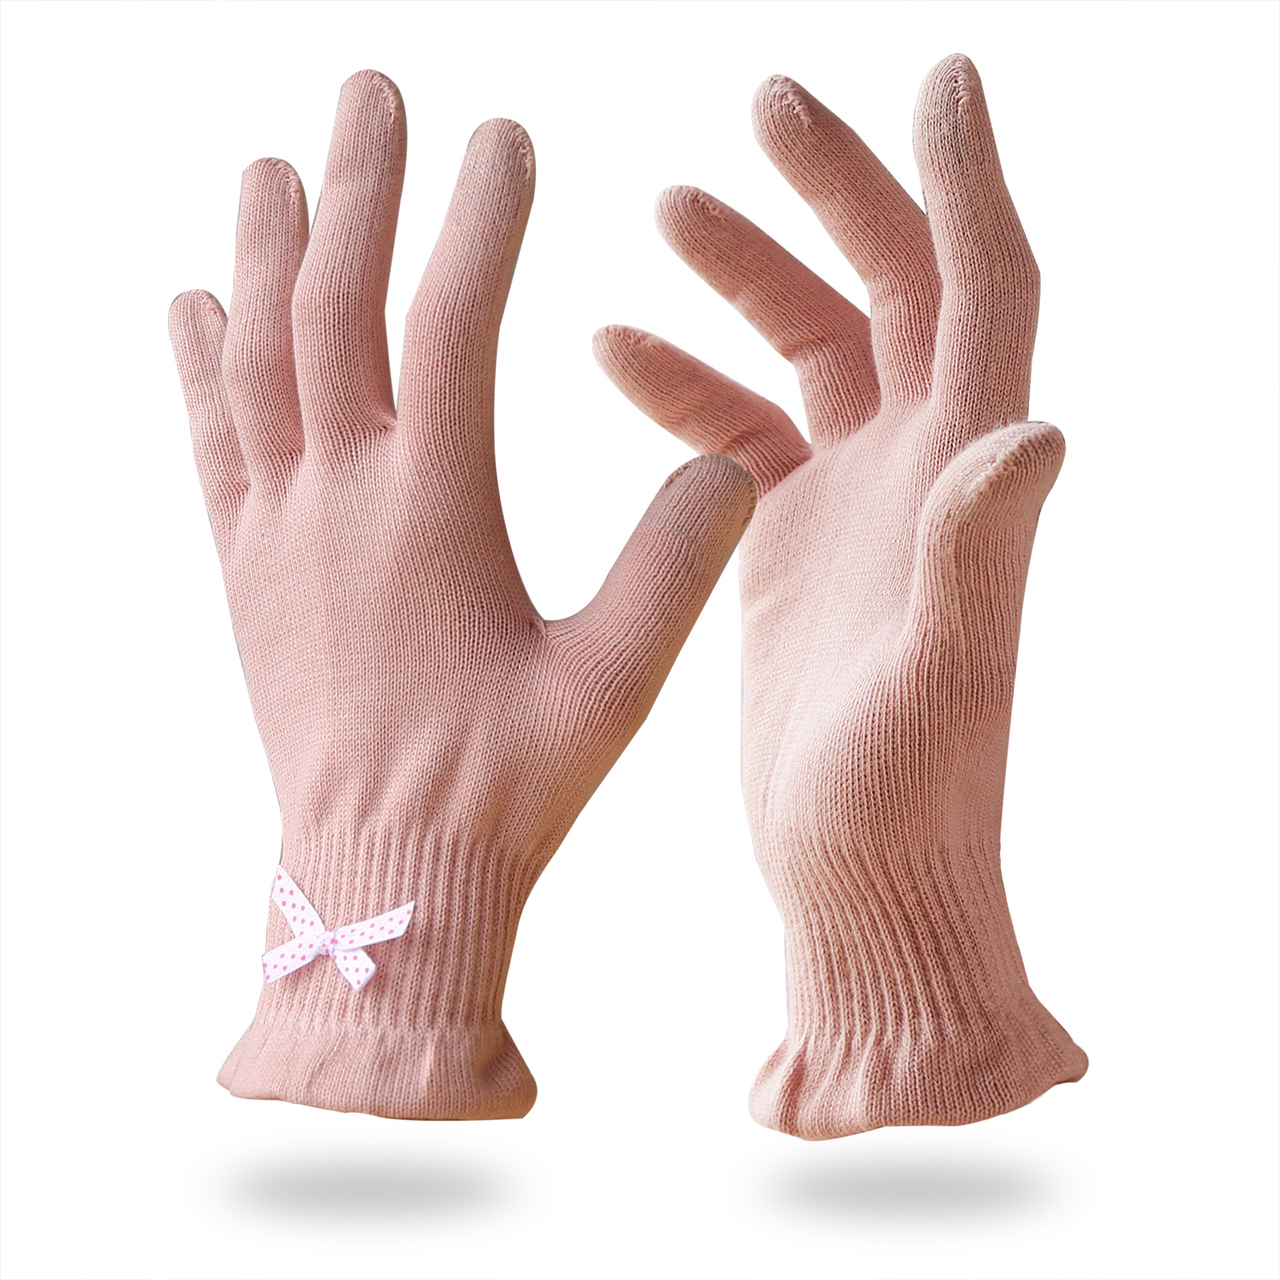 Beauty Cotton Gloves with Touchscreen Fingers for Women/BCG-001